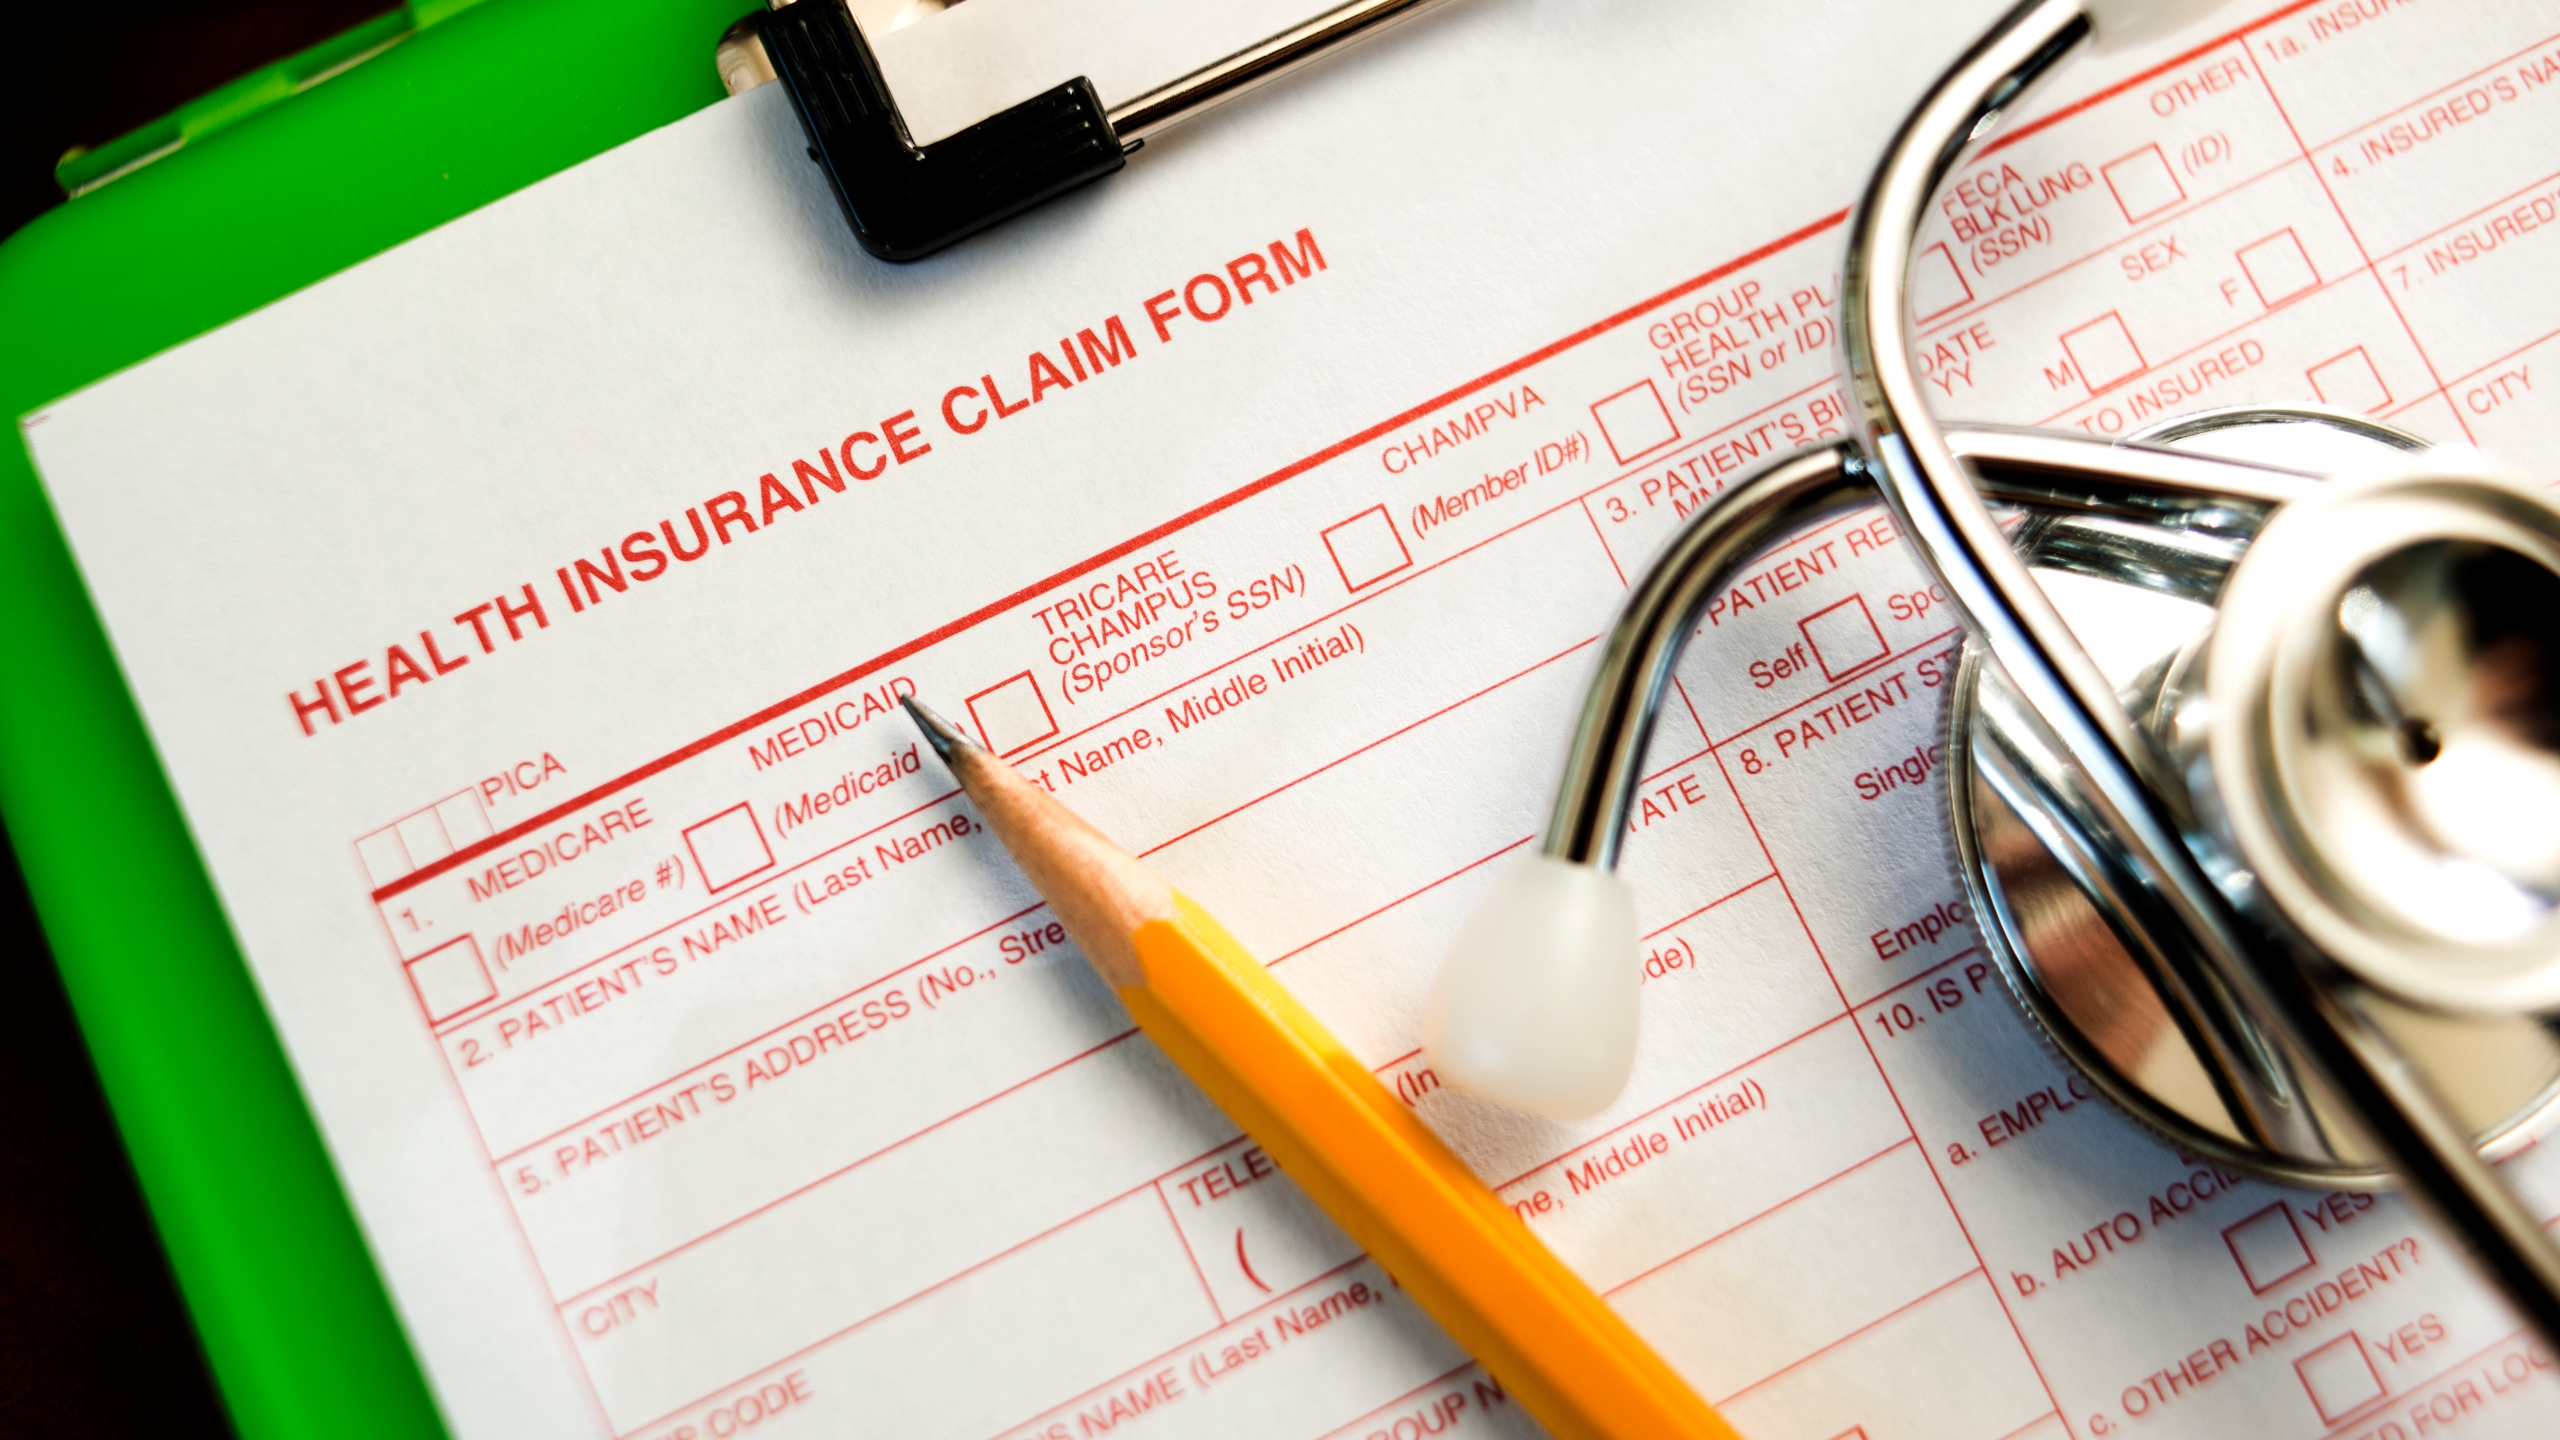 A health insurance claim form is seen in this undated photo. (Credit: Getty Images)